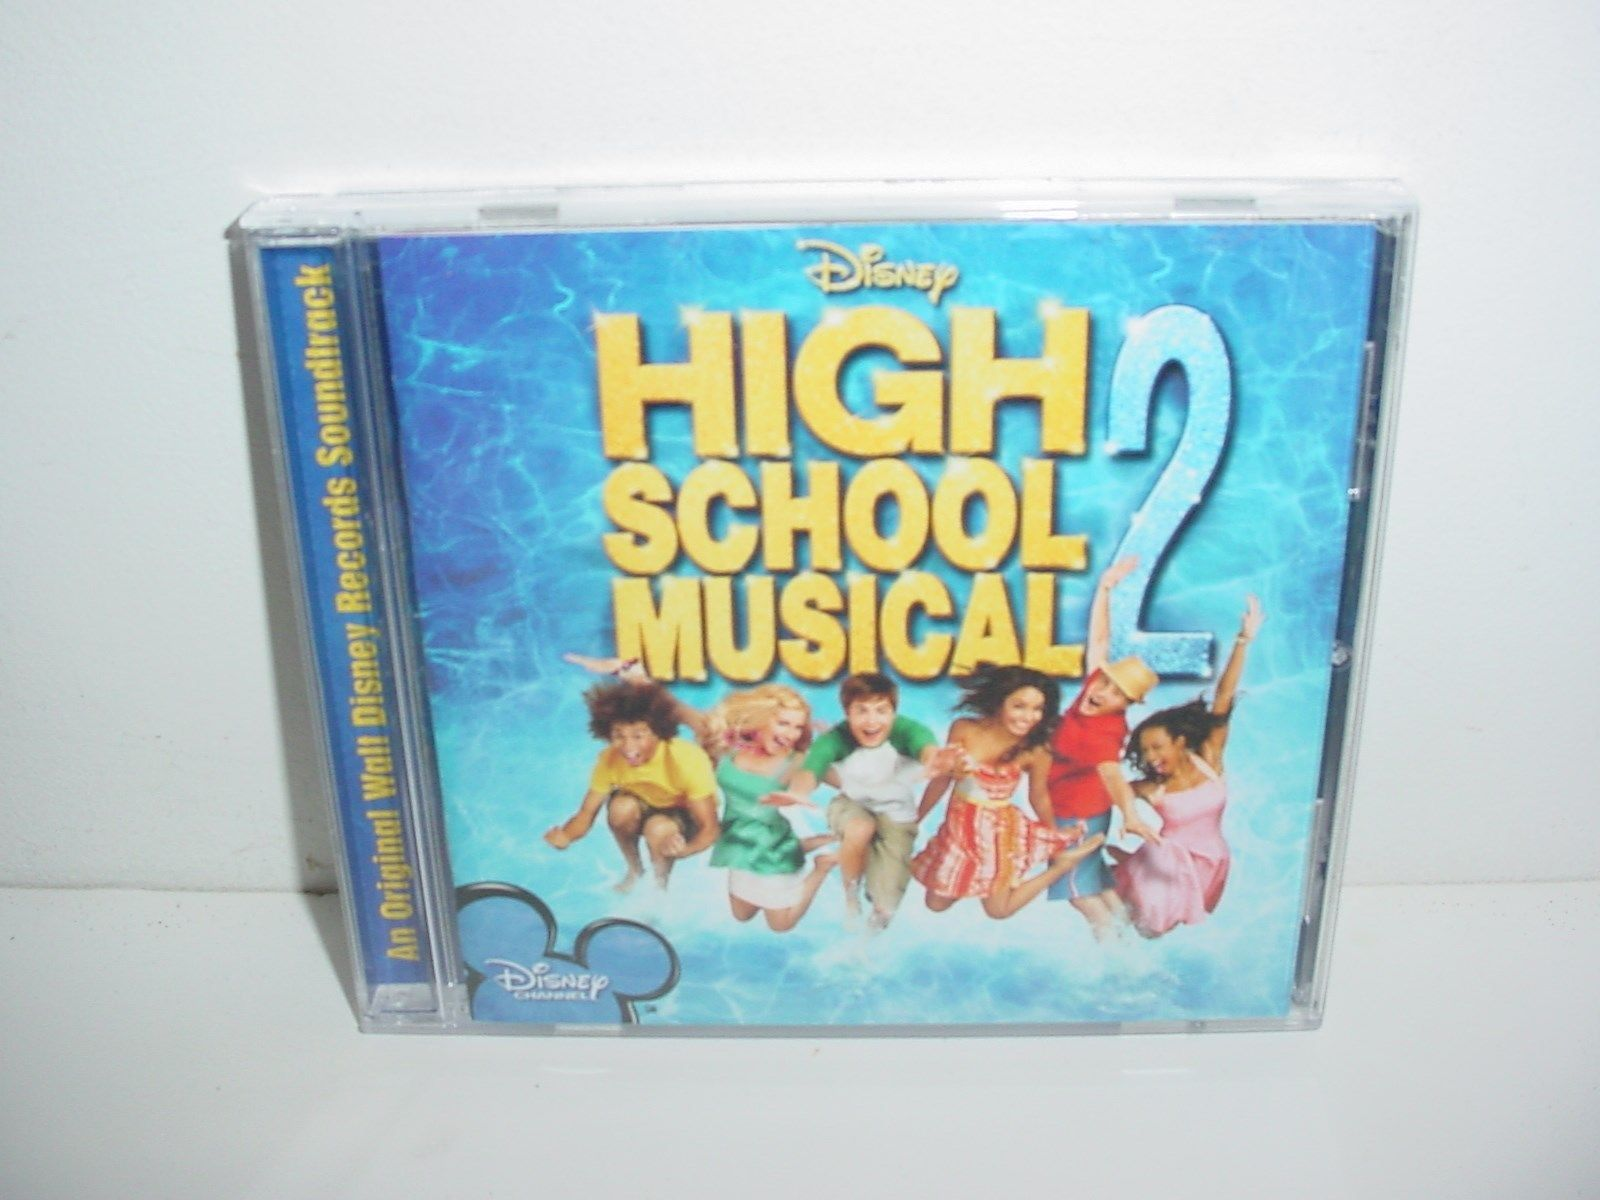 High School Musical 2 Original Soundtrack by High School Musical Cast CD Music